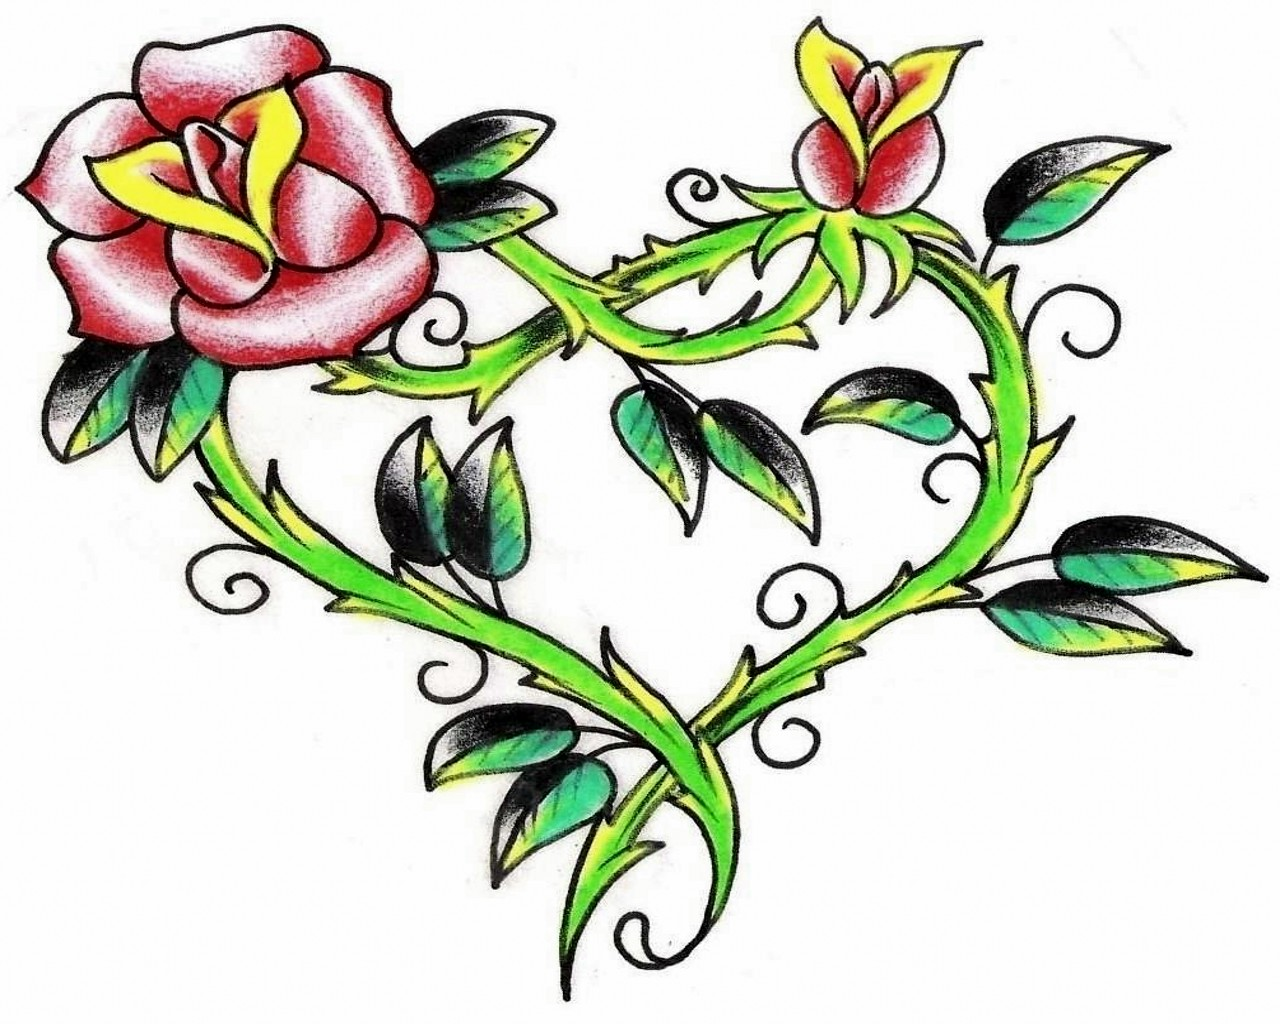 Tattoo flower clipart hd wallpaper image free download Flower And Heart Tattoo Designs Group with 74+ items image free download